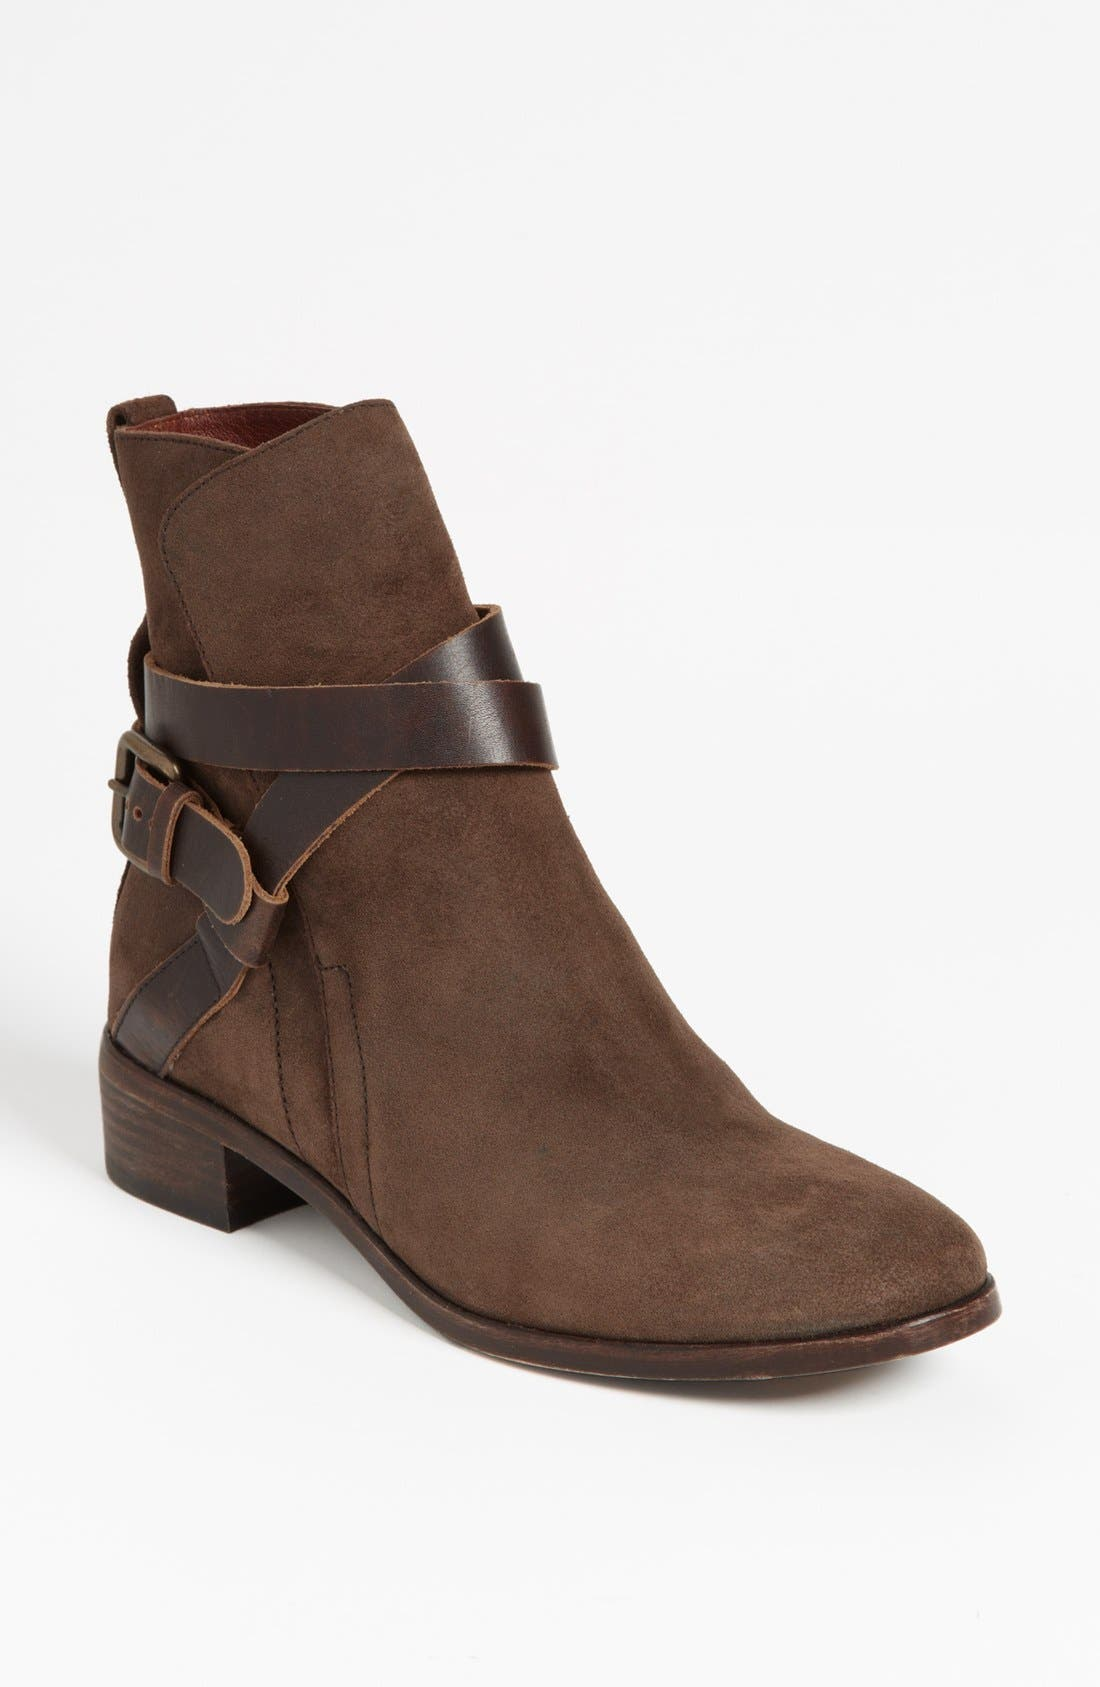 Main Image - See by Chloé 'Janis' Bootie